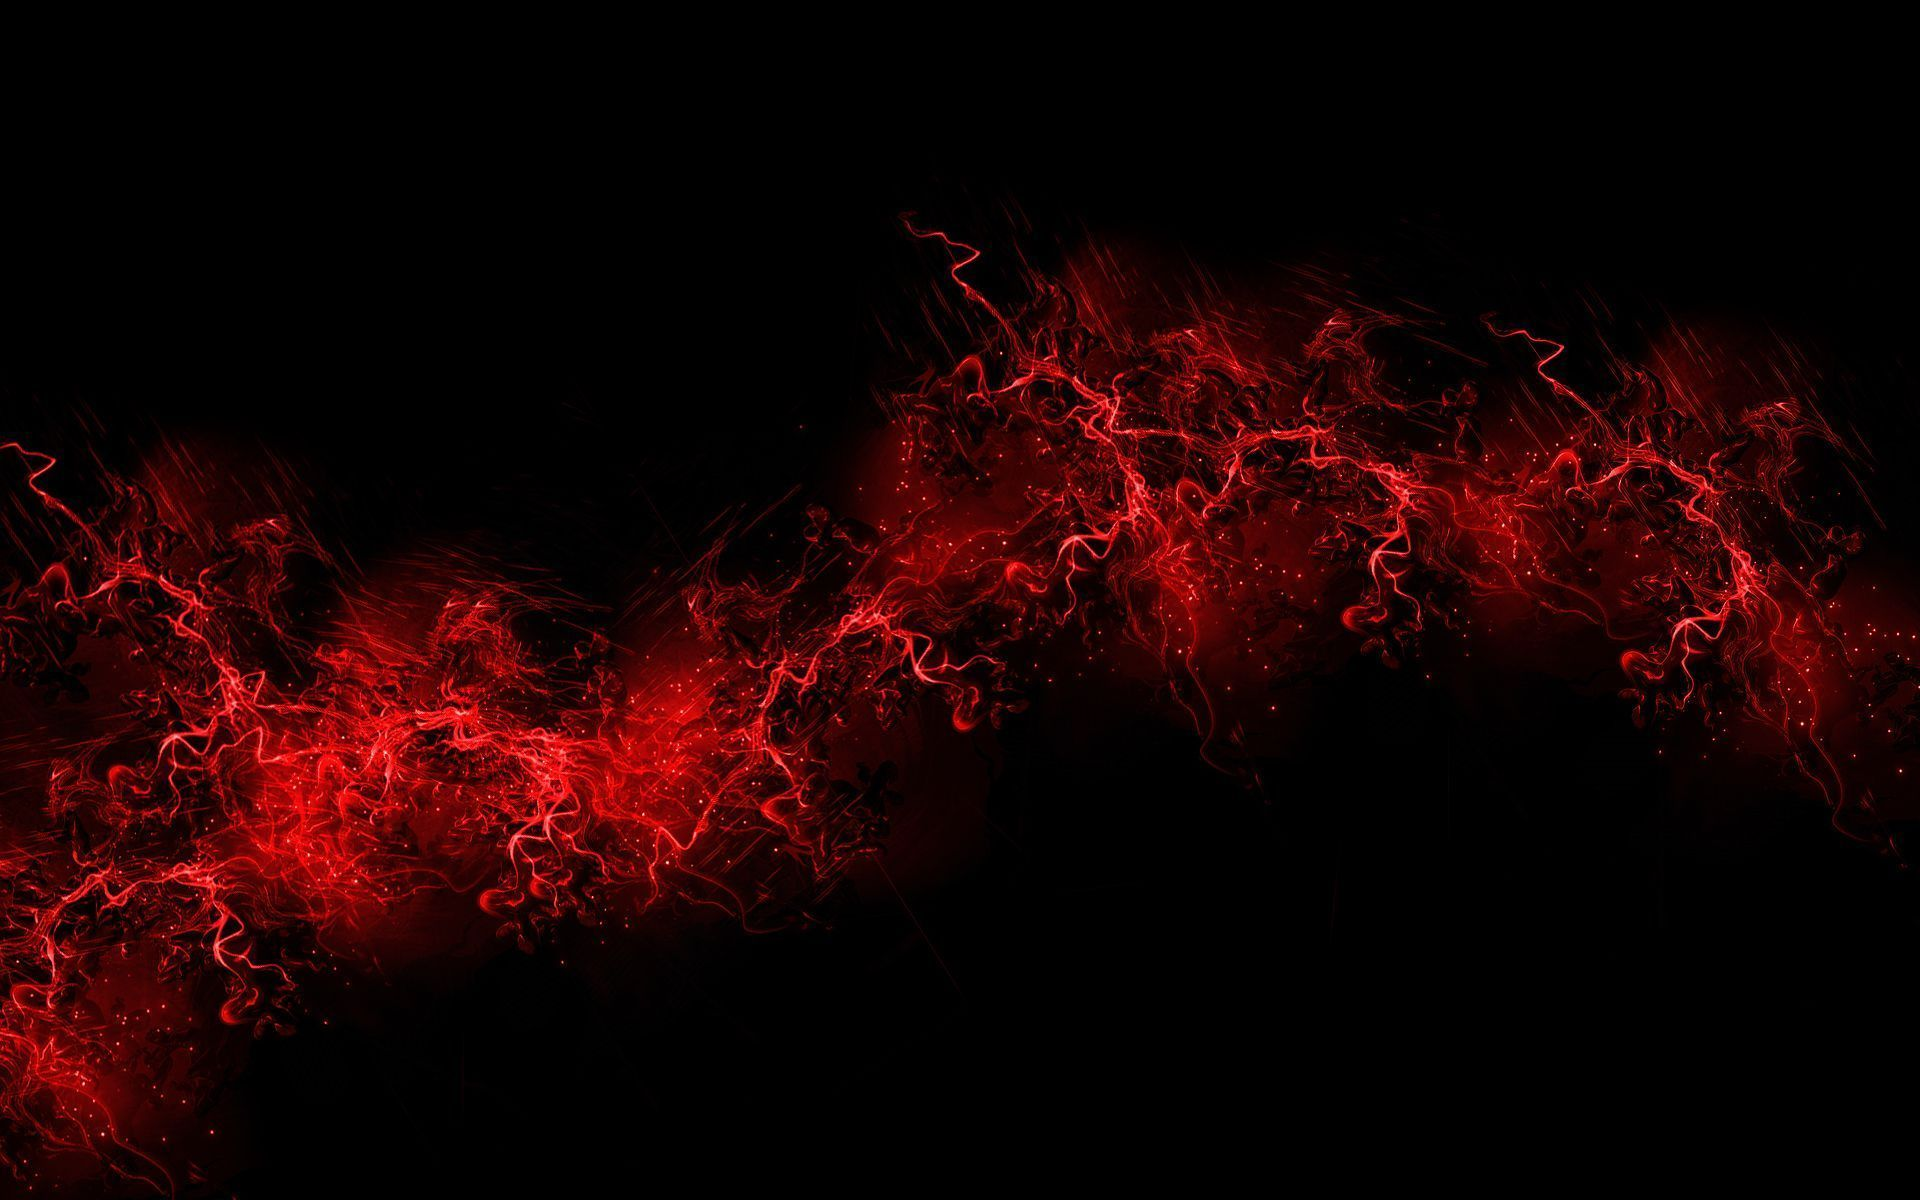 Red car with flames of fire hdr creme - Hd Wallpapers Black And Red Hd Widescreen 11